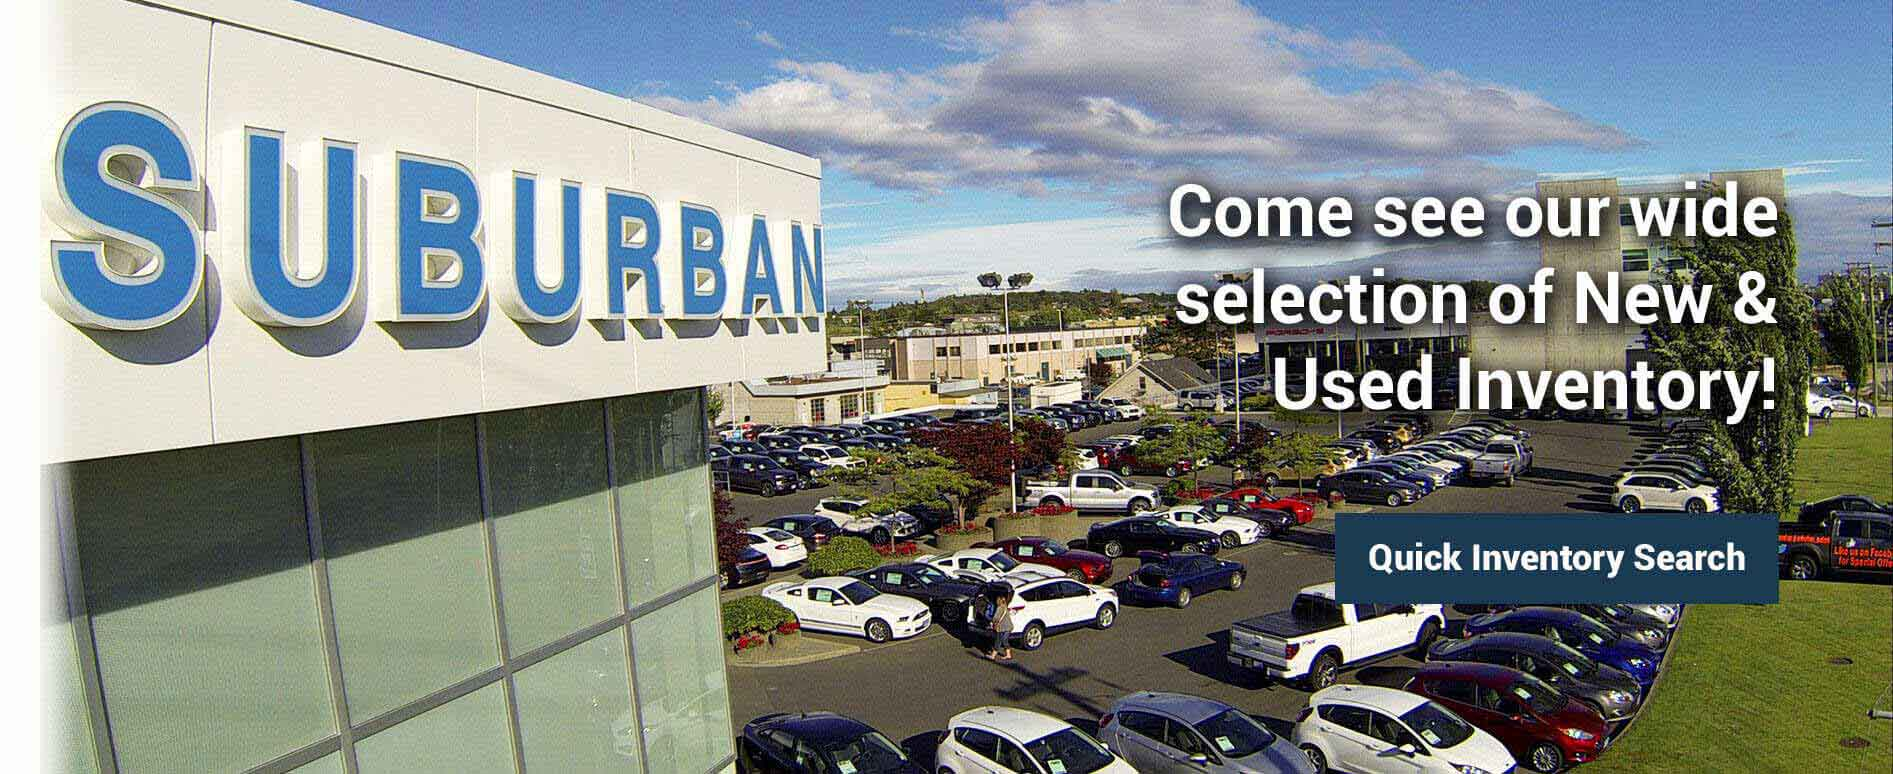 Welcome to Suburban Motors - Quick Inventory Search